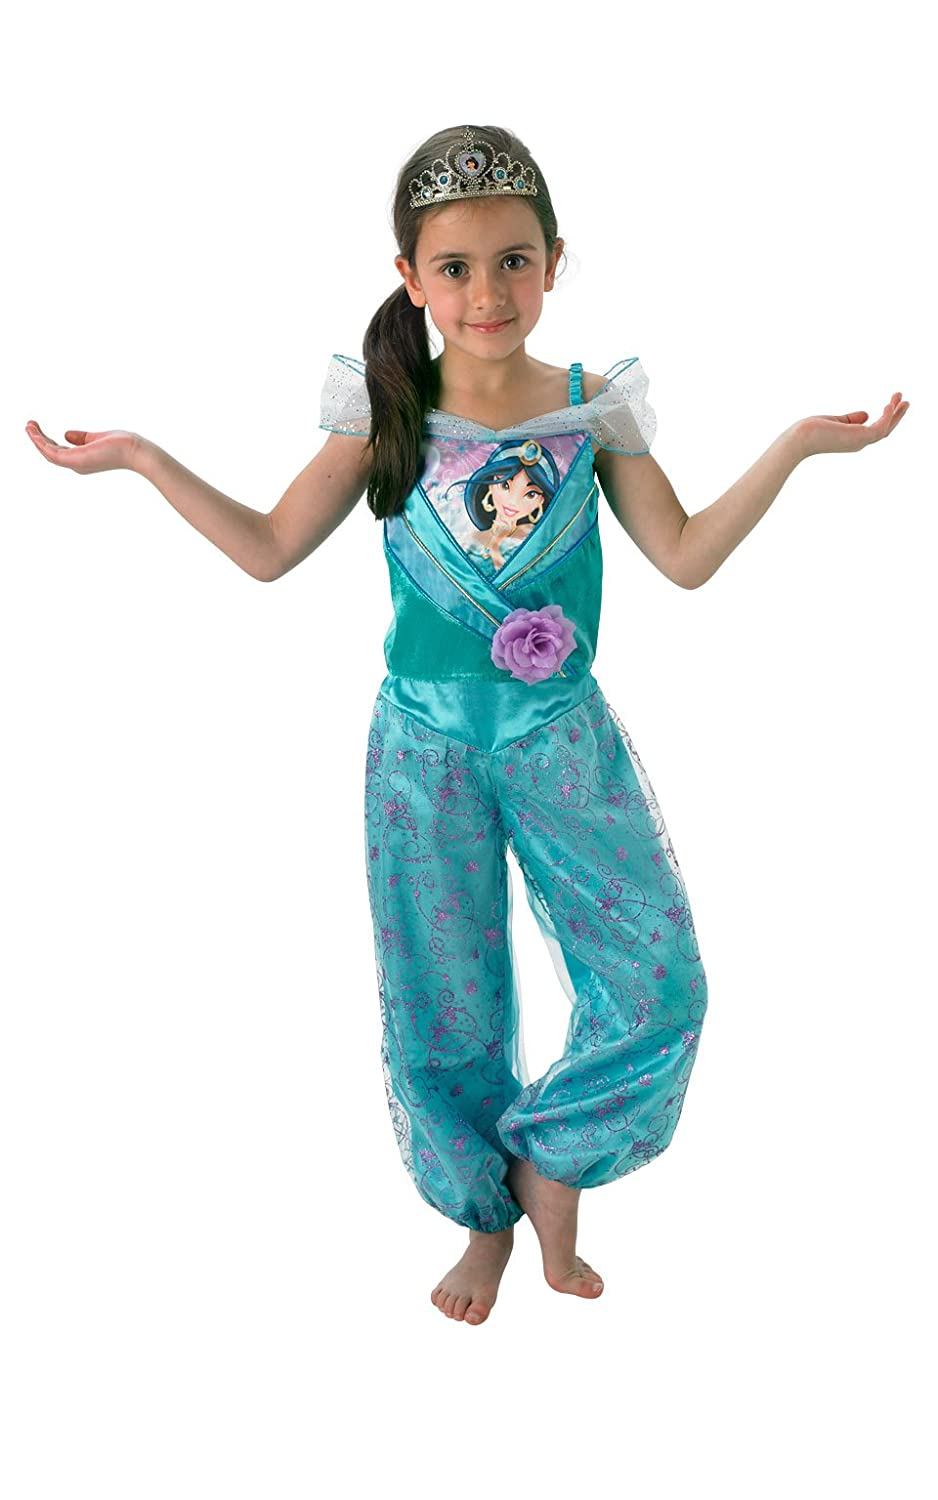 Amazon.com DISNEY PRINCESS ~ Jasmine (Shimmer) Deluxe - Kids Costume 5 - 6 years Toys u0026 Games  sc 1 st  Amazon.com & Amazon.com: DISNEY PRINCESS ~ Jasmine (Shimmer) Deluxe - Kids ...